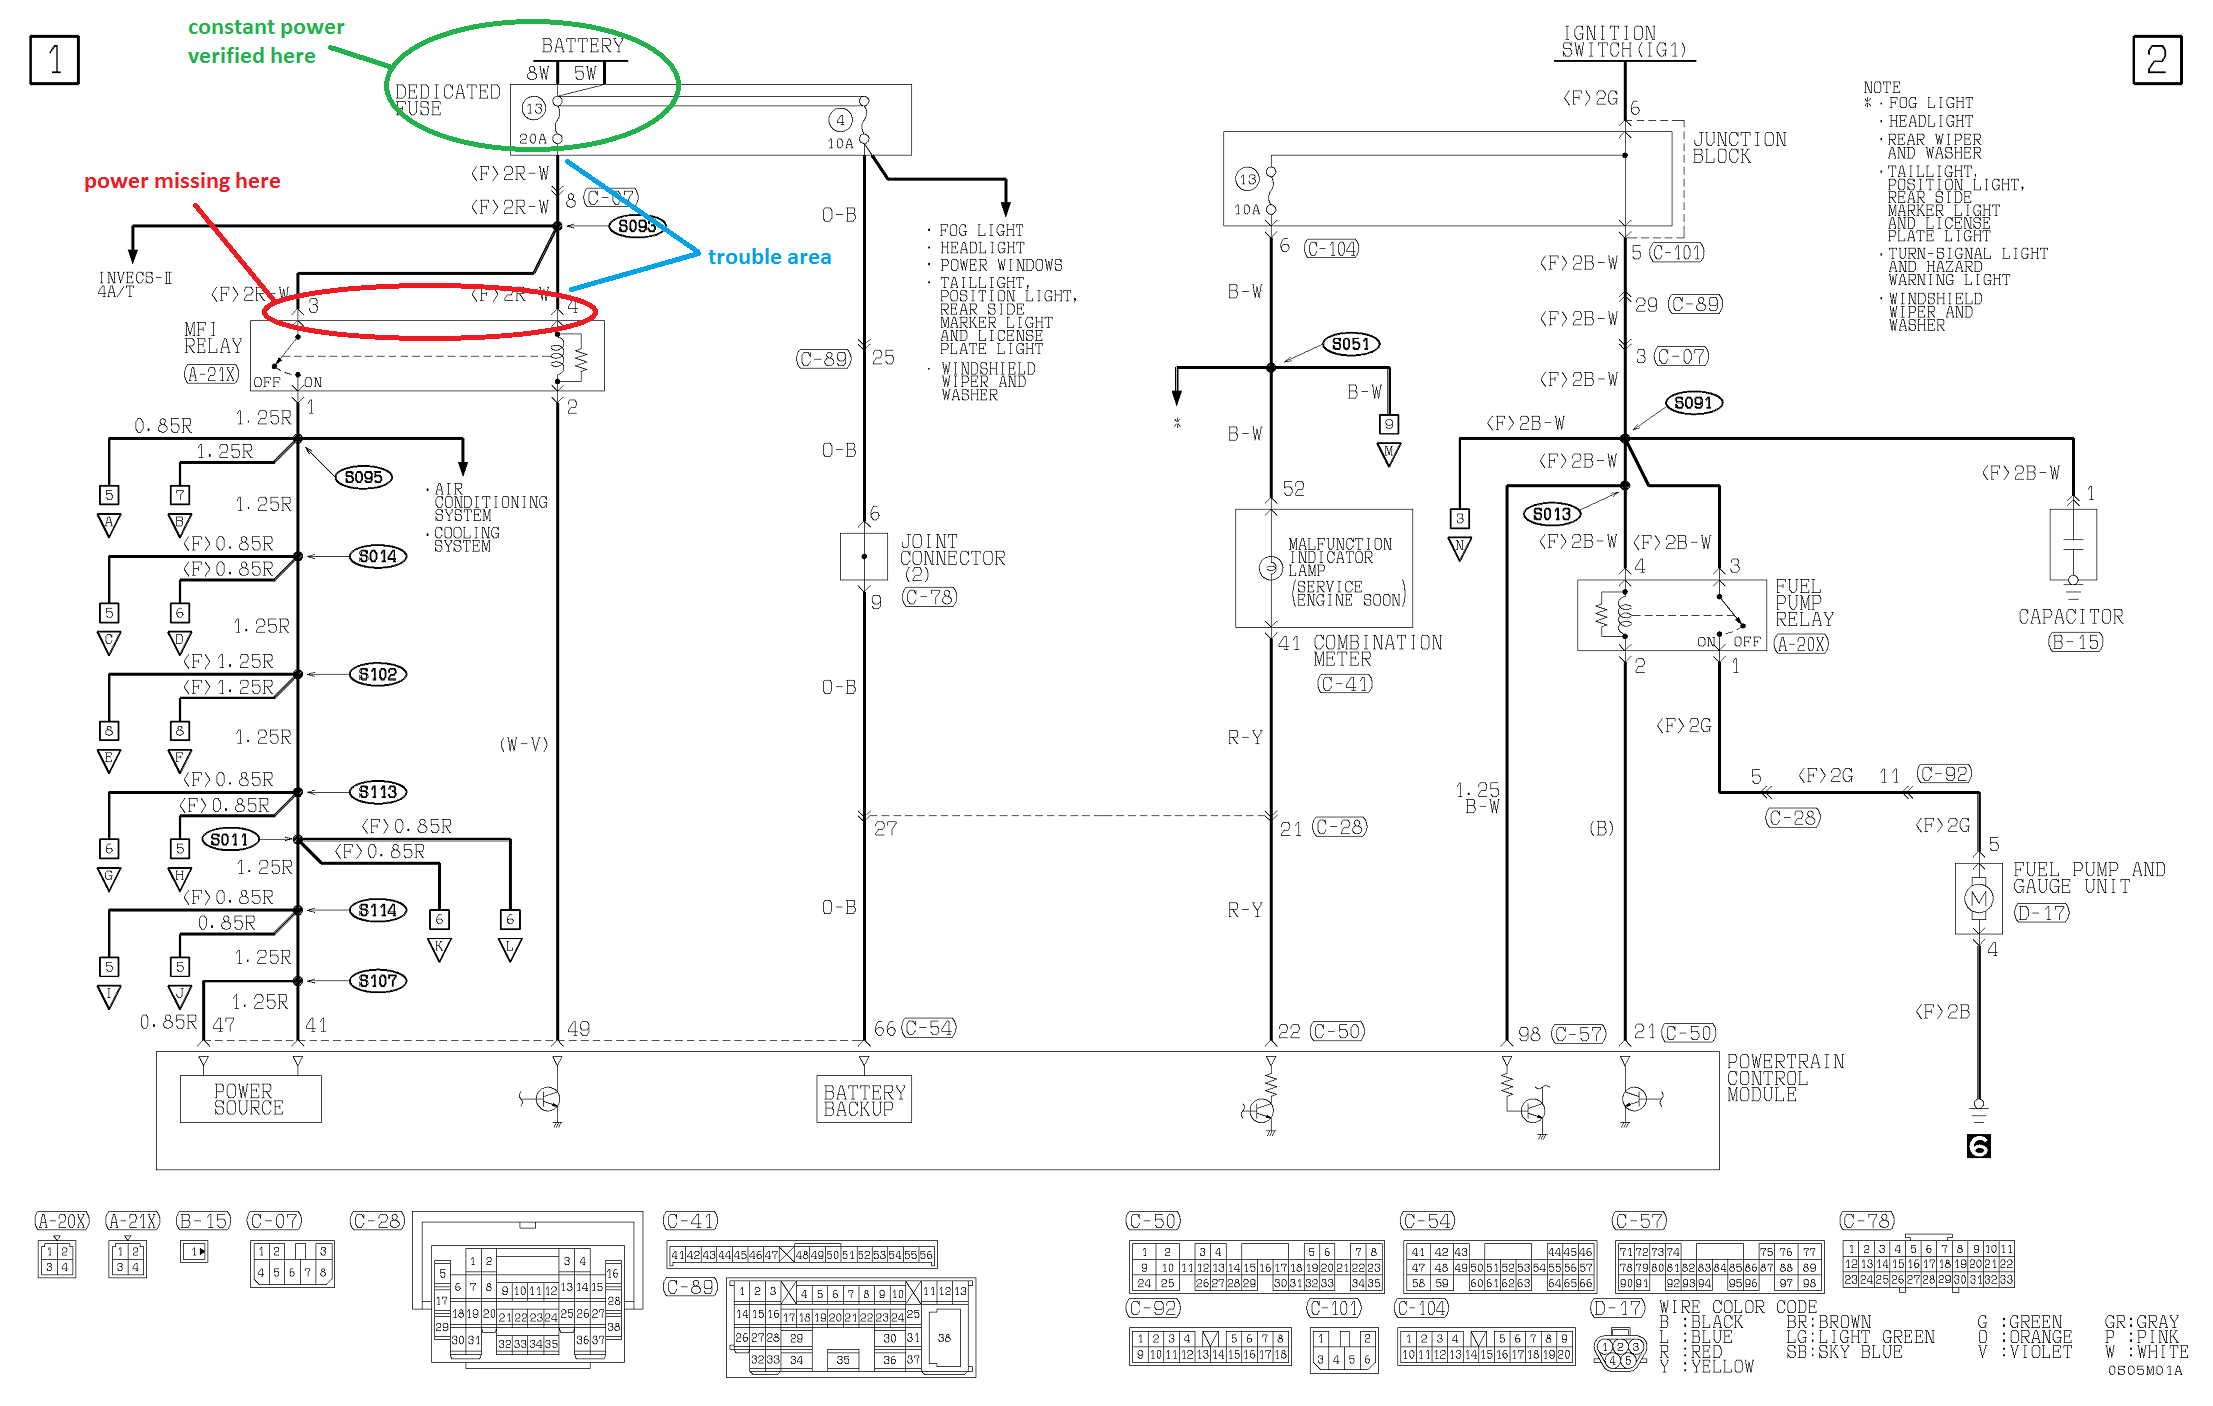 2000 Eclipse Gs 24 No Start Injector Pulse Spark Fuel Mitsubishi Rs Wiring Schematic Thanks We Need To Address That Issue Then If Mfi Relay Doesnt Get Power It Can Never Turn The Computer On And Of Course Problems Pile Up From